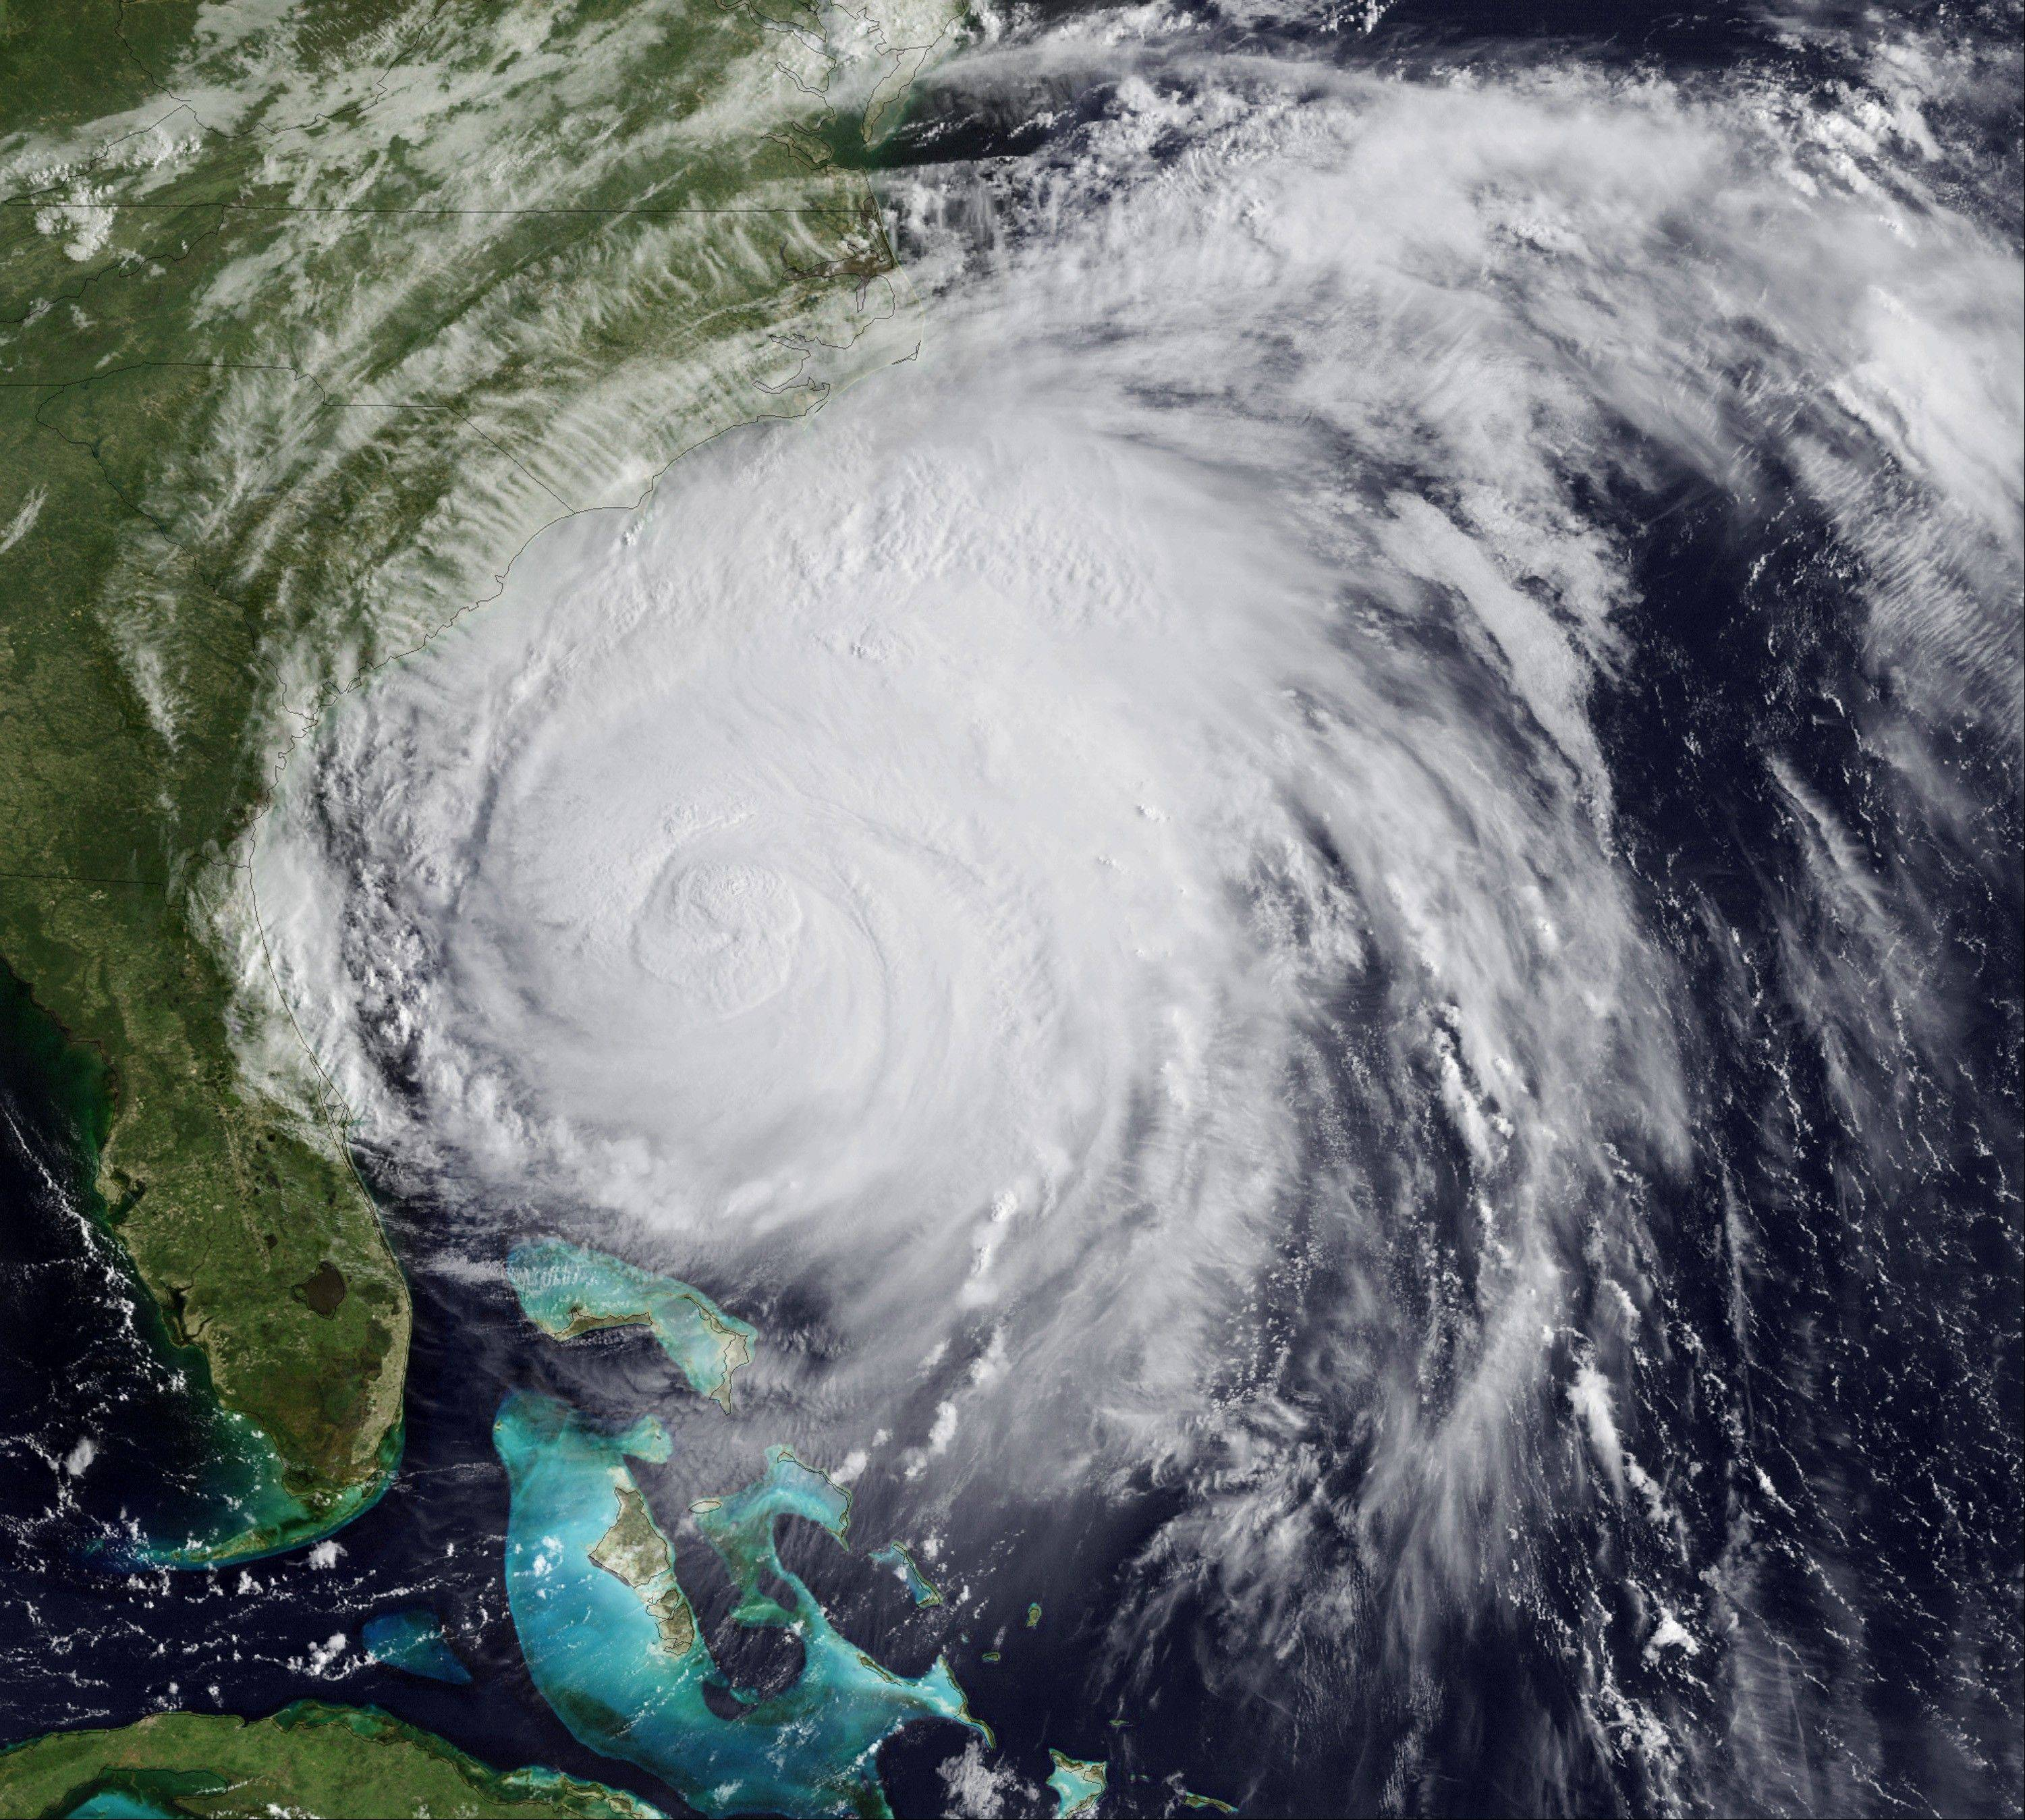 This satellite image provided by NOAA and taken at 12:45 GMT Friday Aug. 26, 2011 shows Hurricane Irene as it moves northward along the U.S. eastern coastline with 110 mph sustained winds. Hurricane Irene began lashing the East Coast with rain Friday ahead of a weekend of violent weather that was almost certain to heap punishment on a vast stretch of shoreline from the Carolinas to Massachusetts.